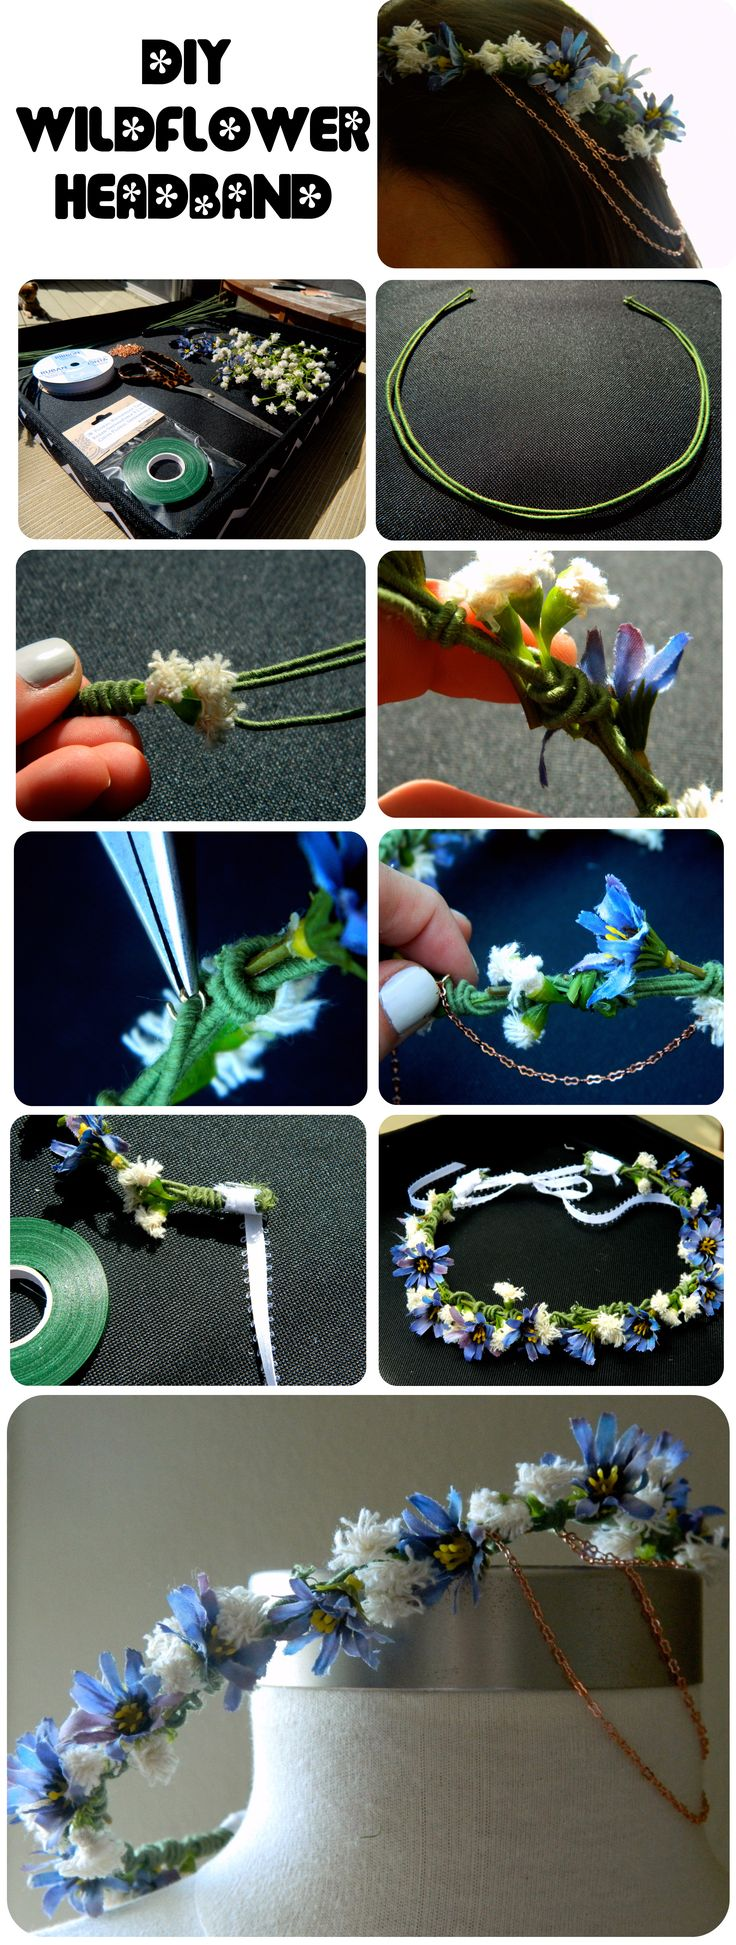 How to make a floral headband. I'm putting this here as it gives me some good ideas and also shows how easy these are to make.